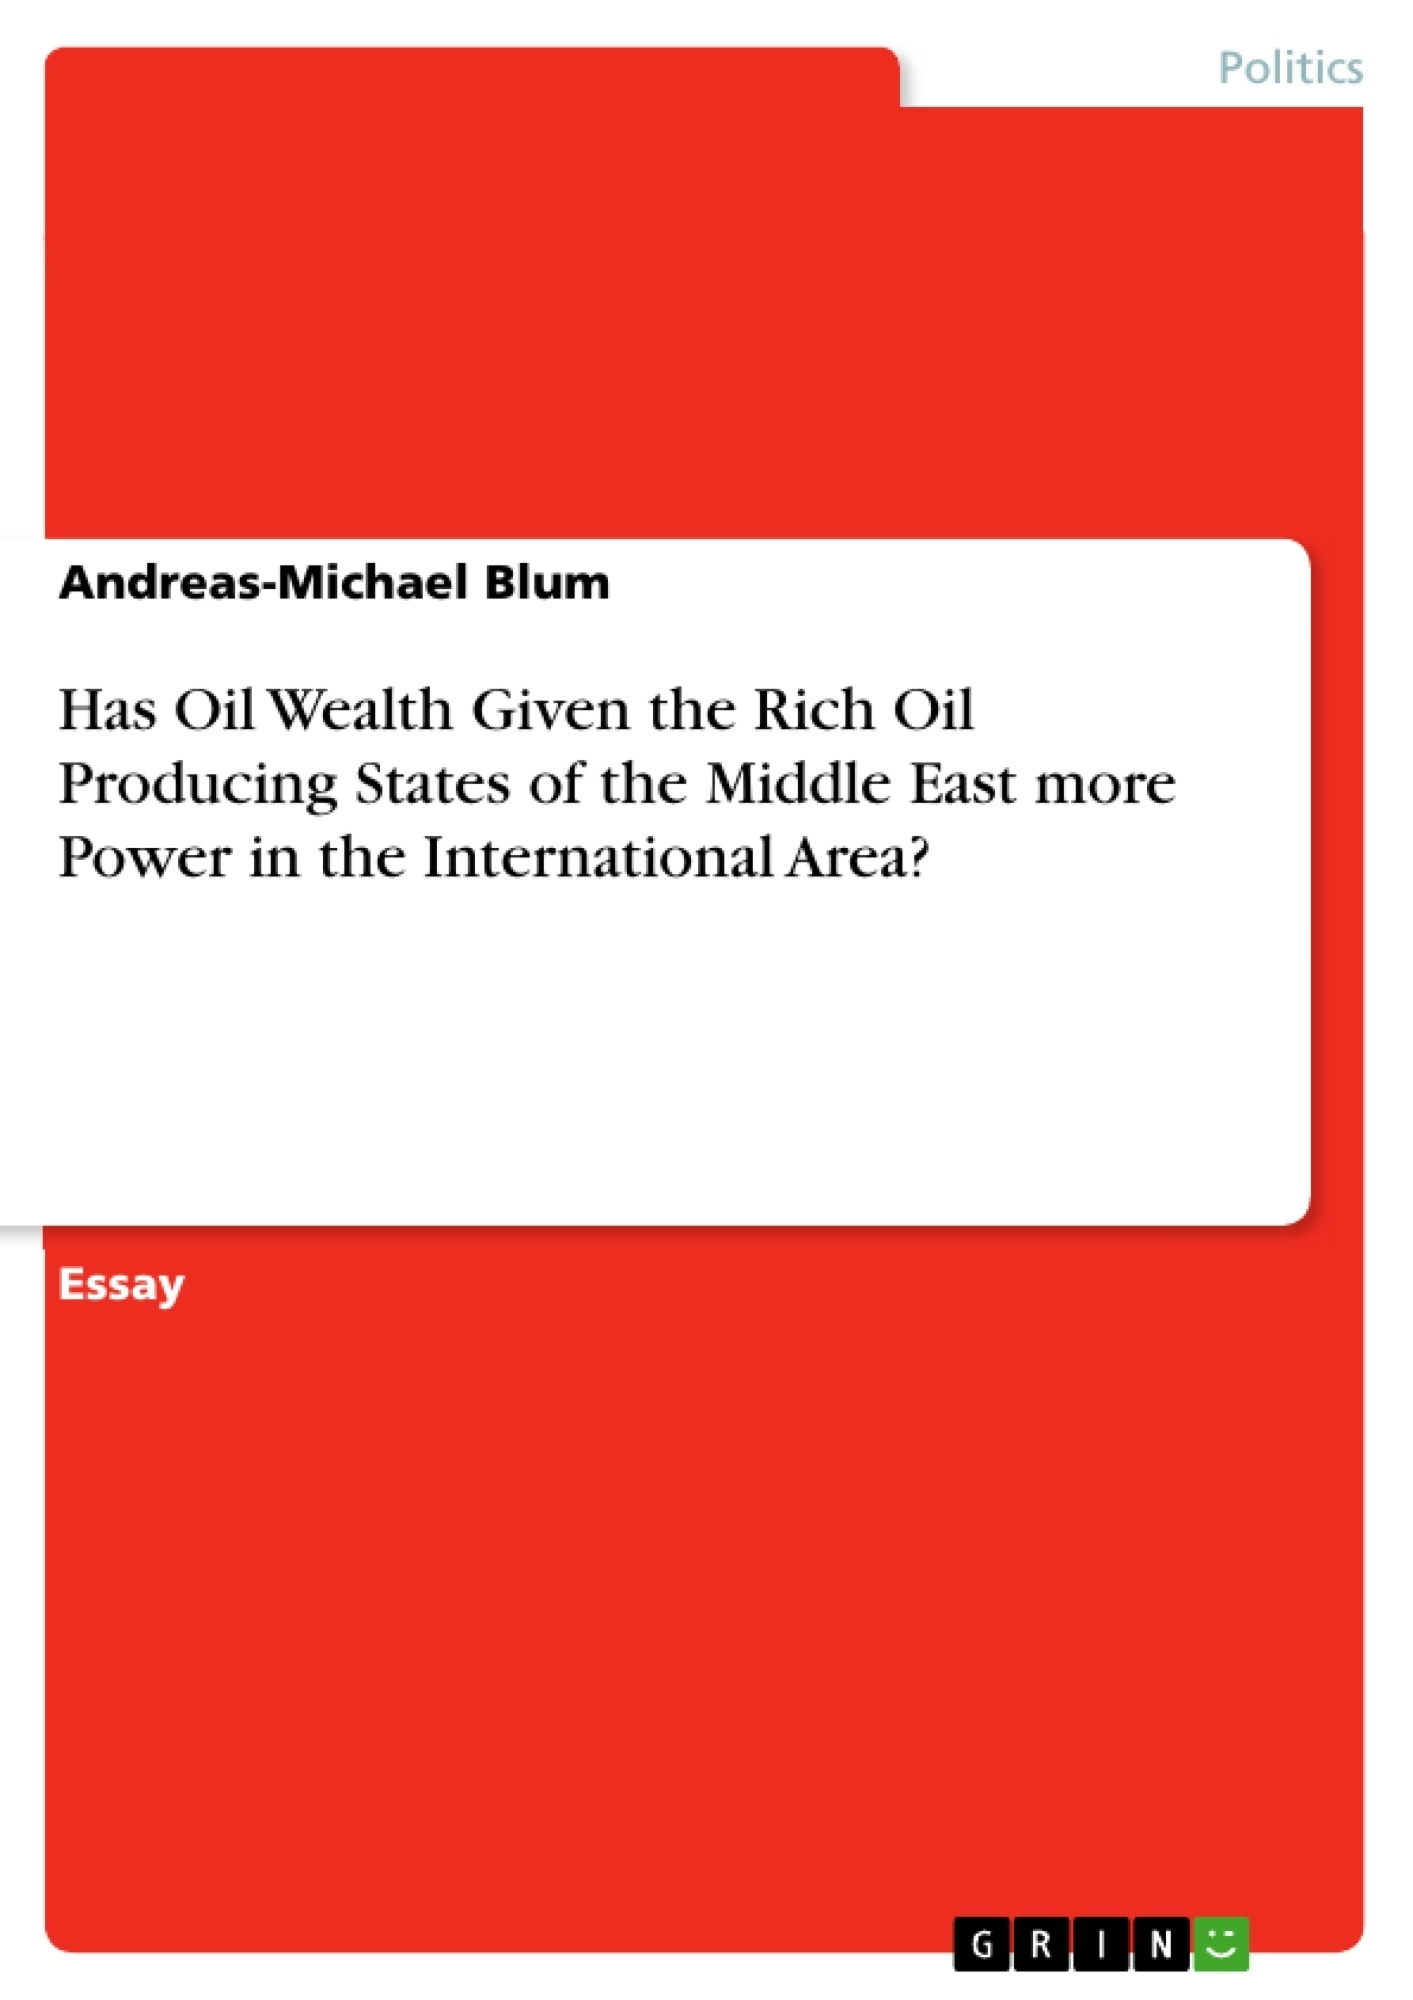 Title: Has Oil Wealth Given the Rich Oil Producing States of  the Middle East more Power in the International Area?